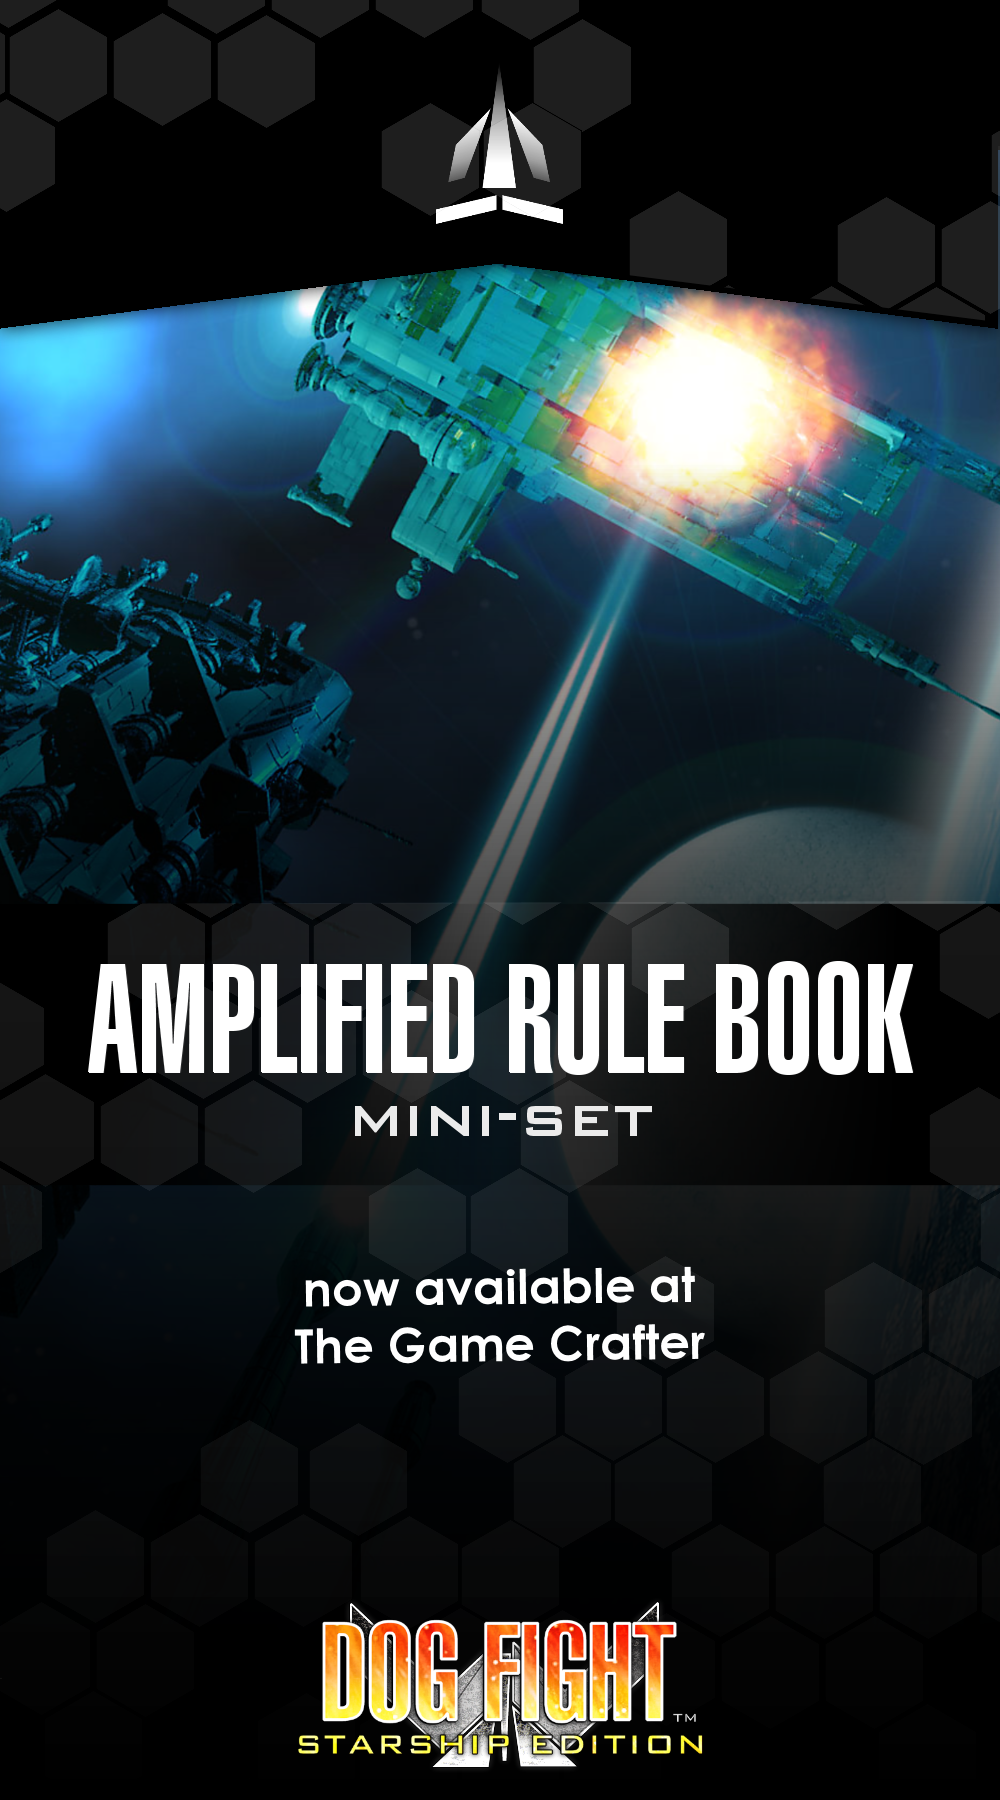 Dog Fight: Starship Edition Amplified Rule Book Miniset